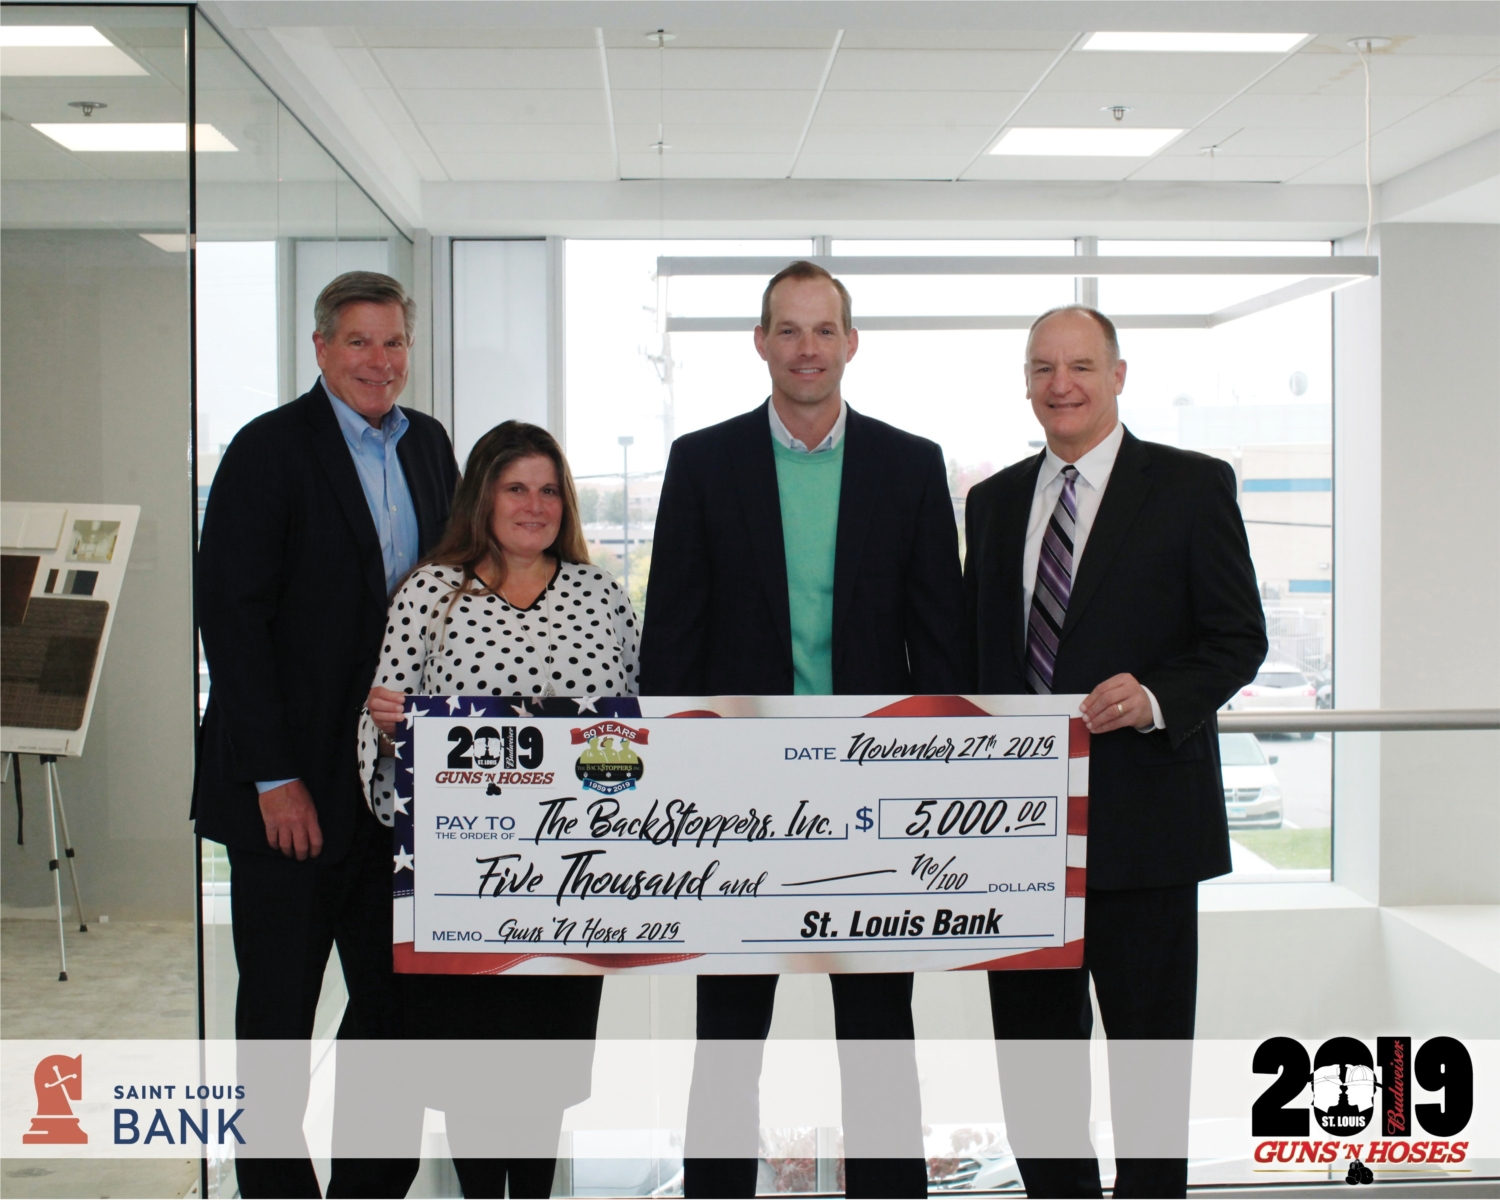 Saint Louis Bank donates $5,000 to The BackStoppers Inc. 2019 Guns 'N Hoses event.  Saint Louis Bank champions this community. Being involved in an organization that profoundly supports the first responders and their families, perfectly aligns with our core values. We are inspired by these heroes (both men and women) and the sacrifices they make daily.  Investing in our community drives Saint Louis Bank, which unites our team members and our family and friends.